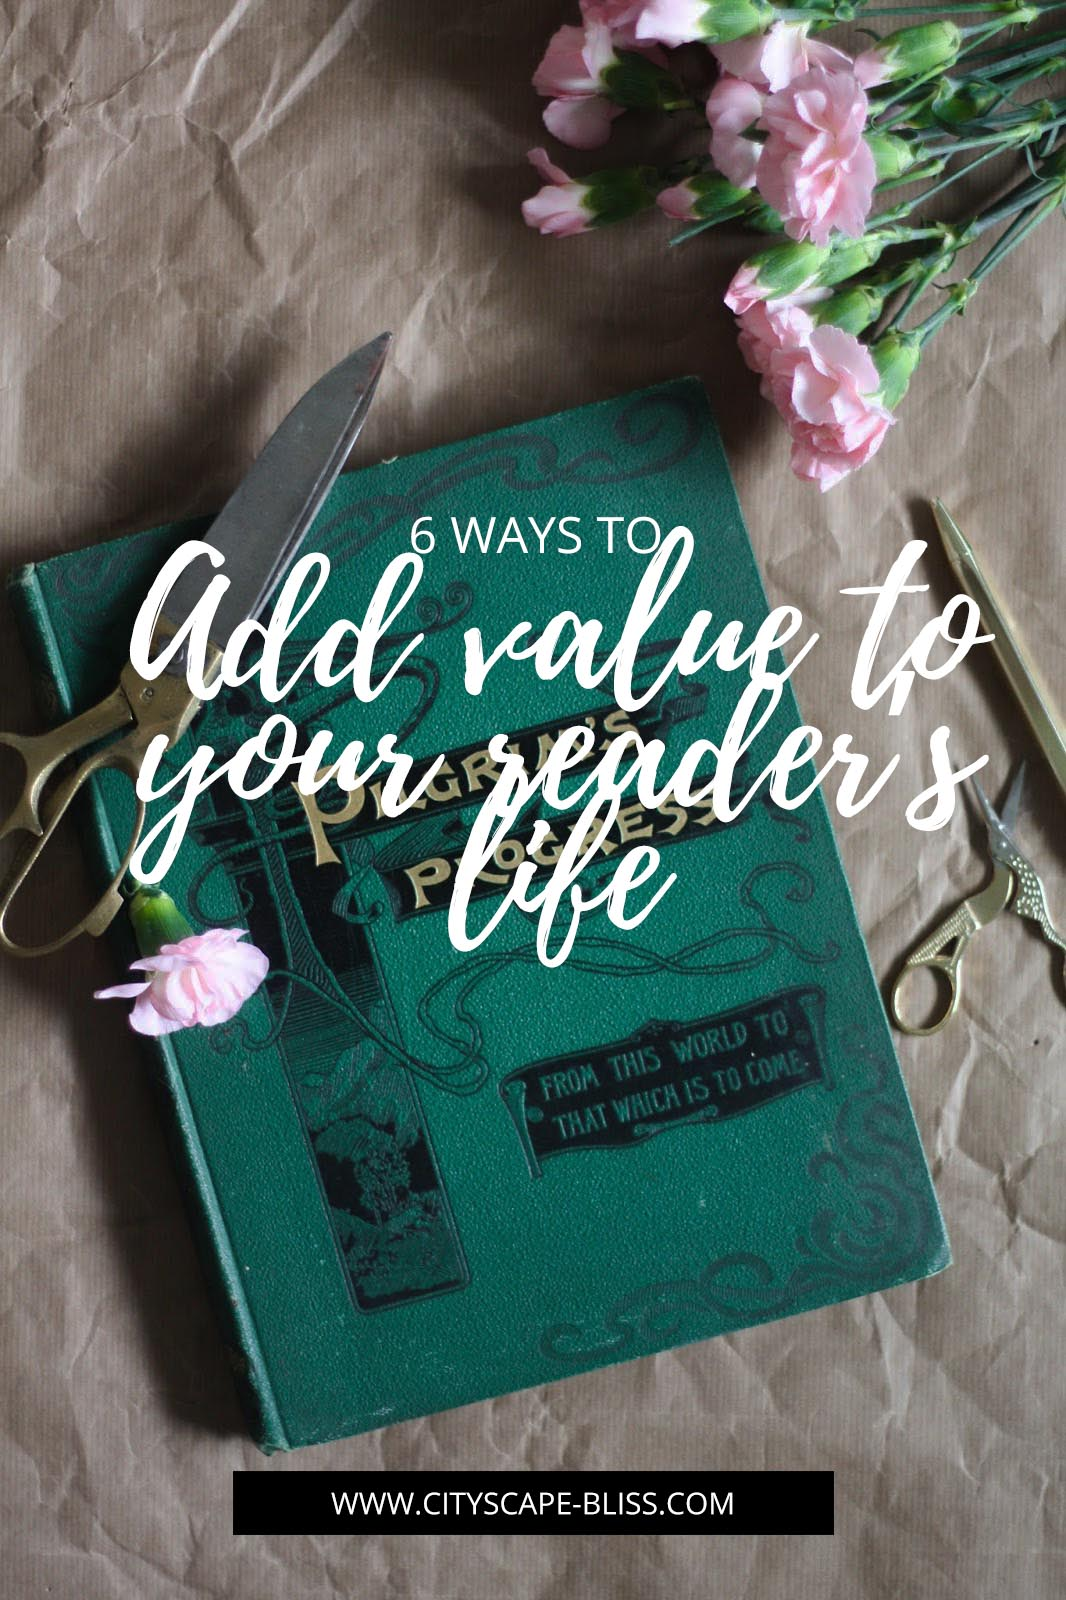 6 ways to add value to your reader's life (& give them content they want to read)